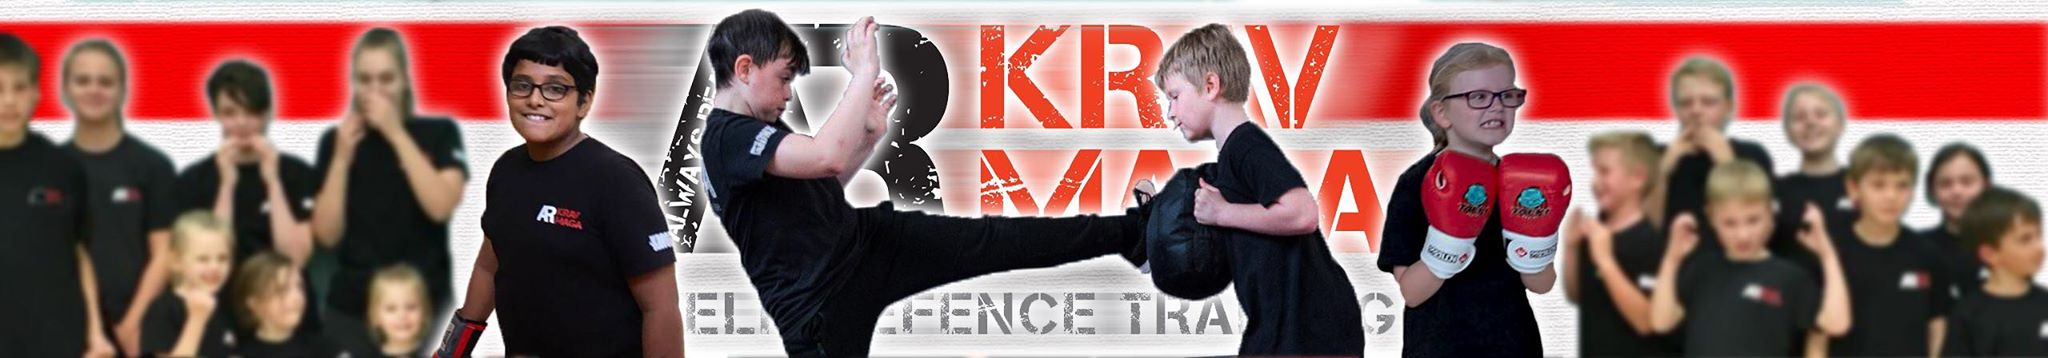 AR Krav Maga Kids and Teens Self-defence Trial Classes - Norwich